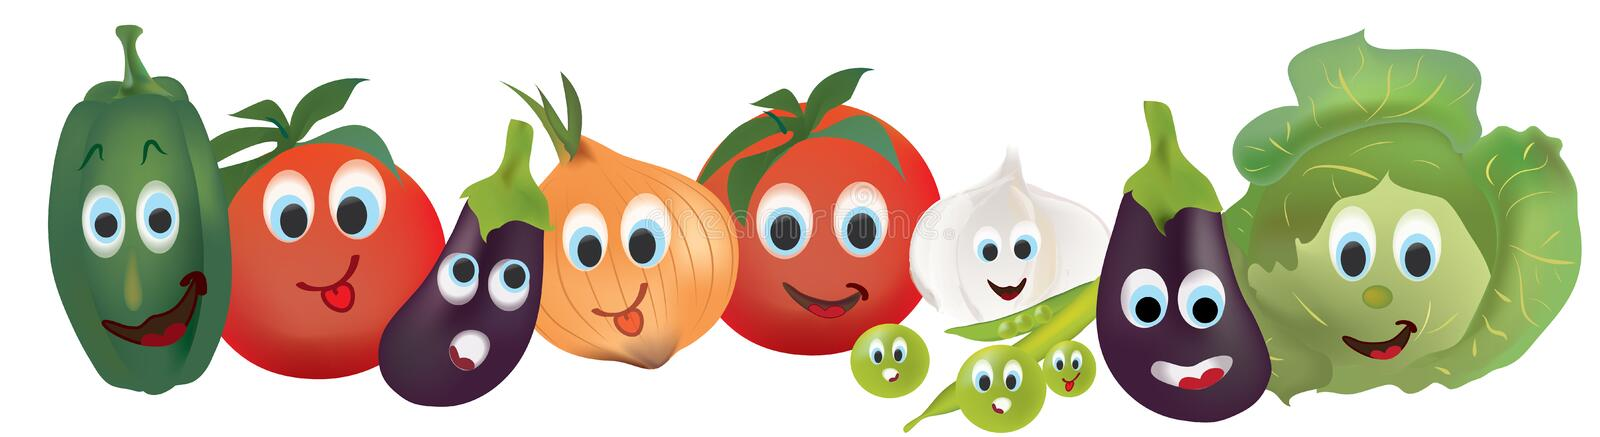 Tomatoes, Peppers, Cabbage, Eggplant, Onion, Garlic and Beans Characters with Facial Expressions vector illustration